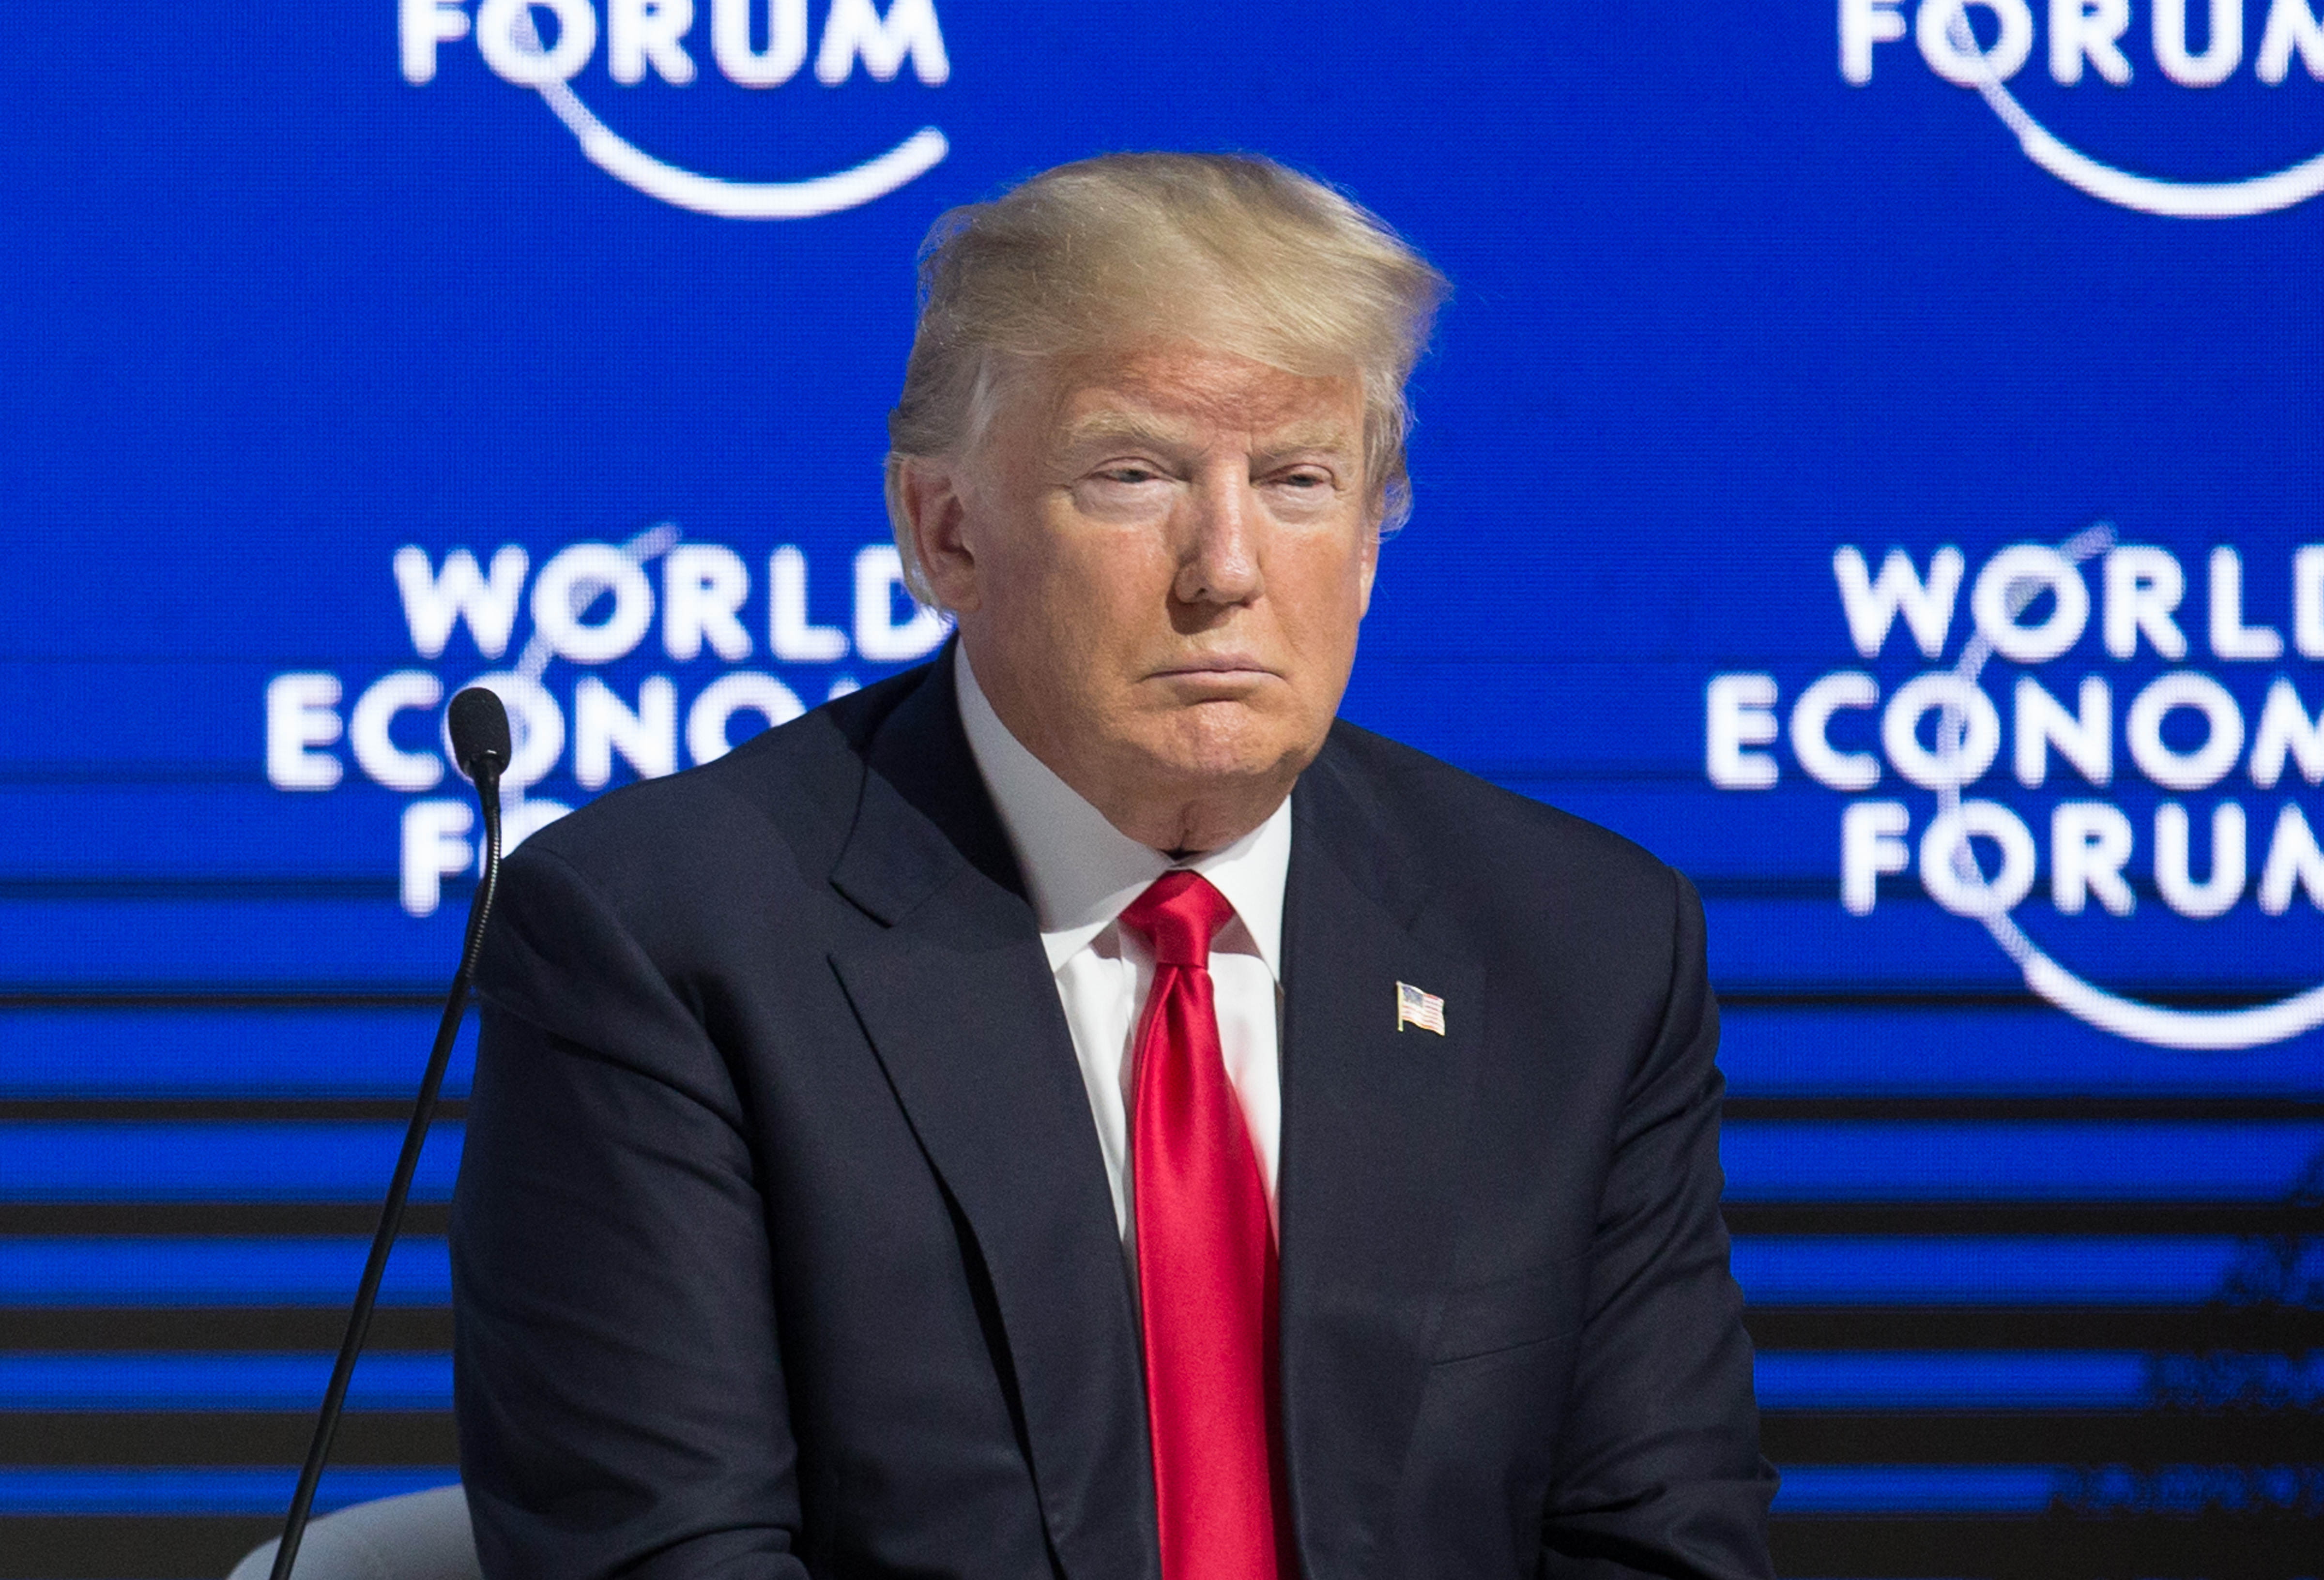 President Donald Trump sits in front of a blue wall that reads World Economic Forum in Davos, Switzerland.